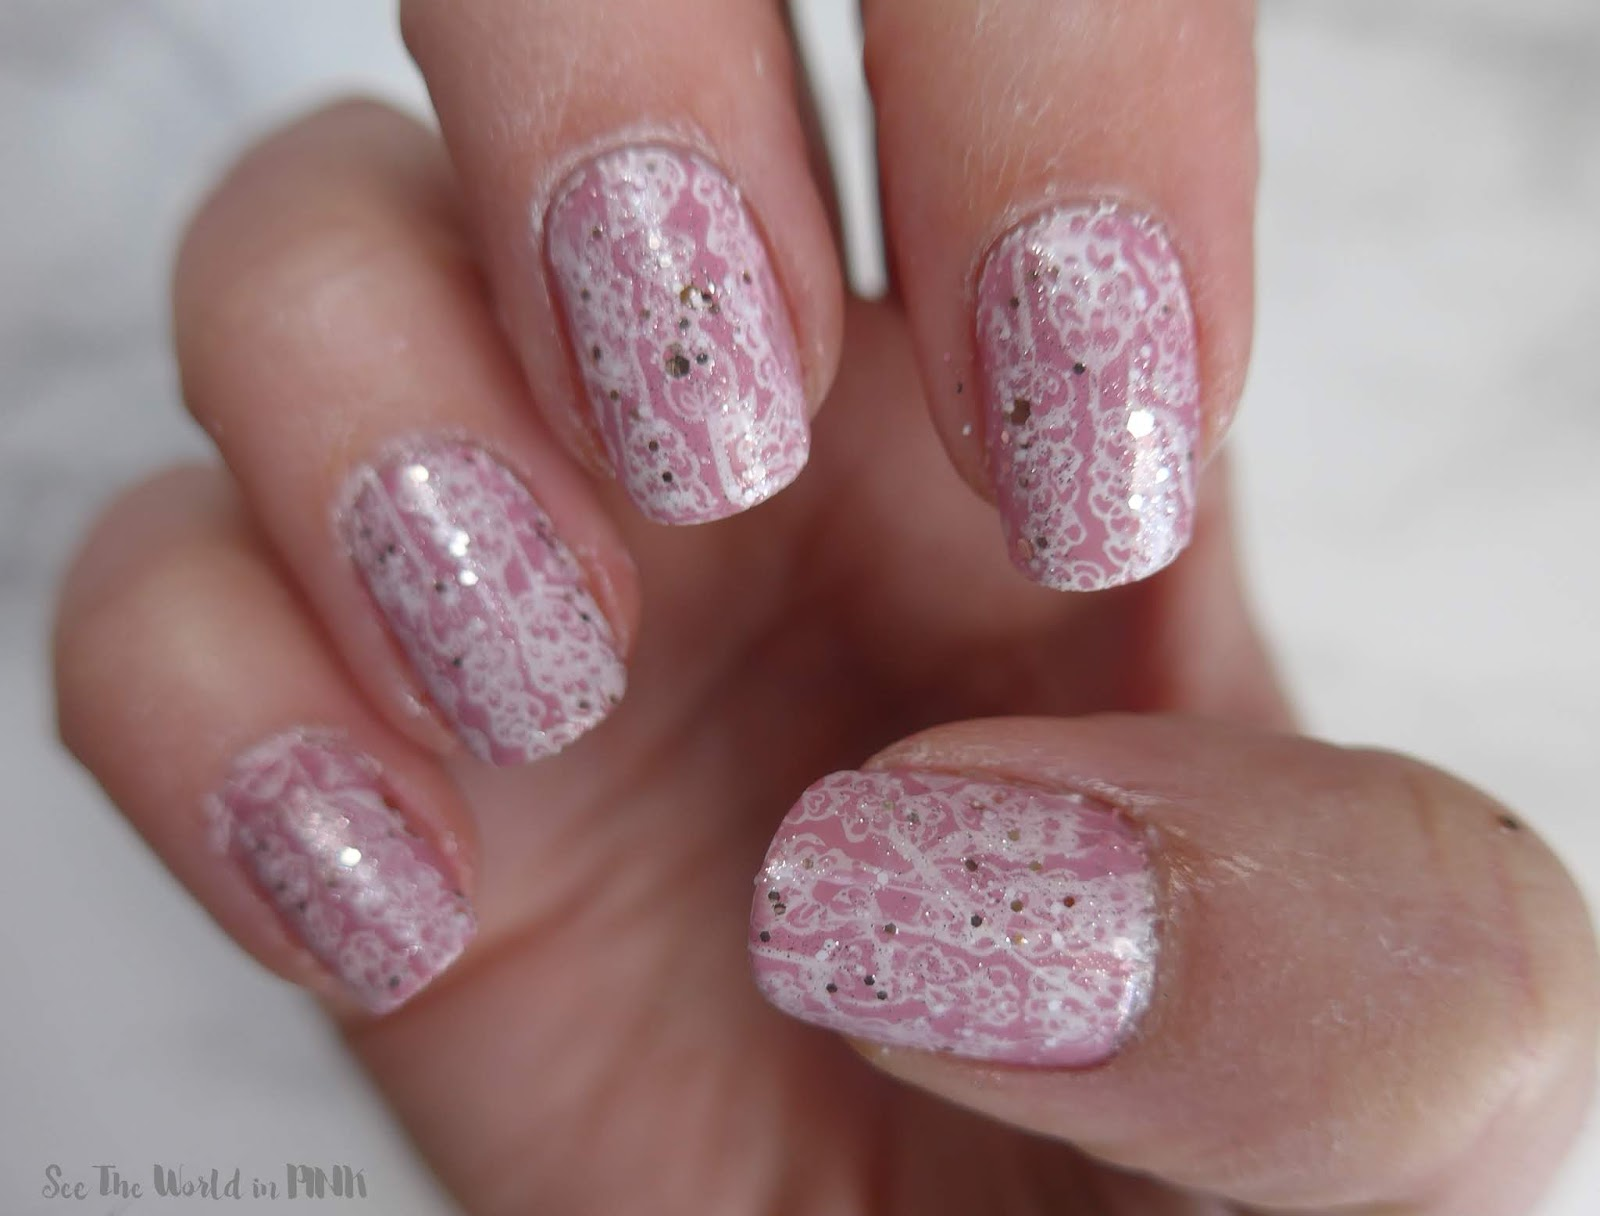 Manicure Monday - Pink, Floral & Glitter Bridal Nails